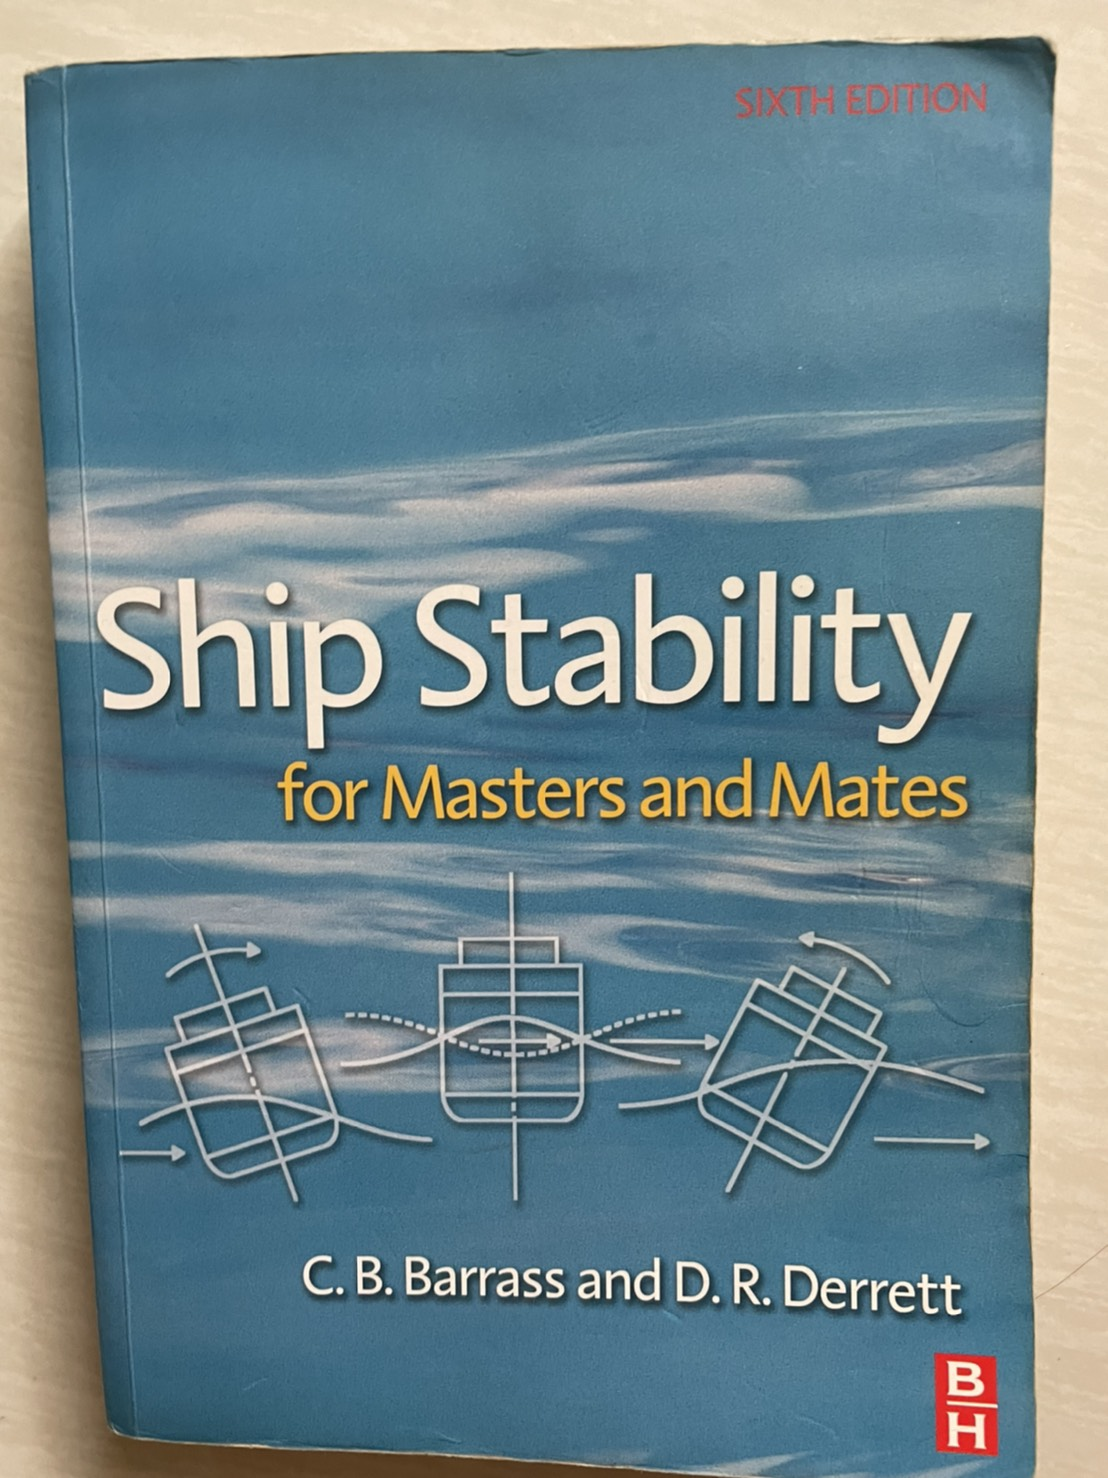 Ship Stability for Masters and Mates 詳細資料